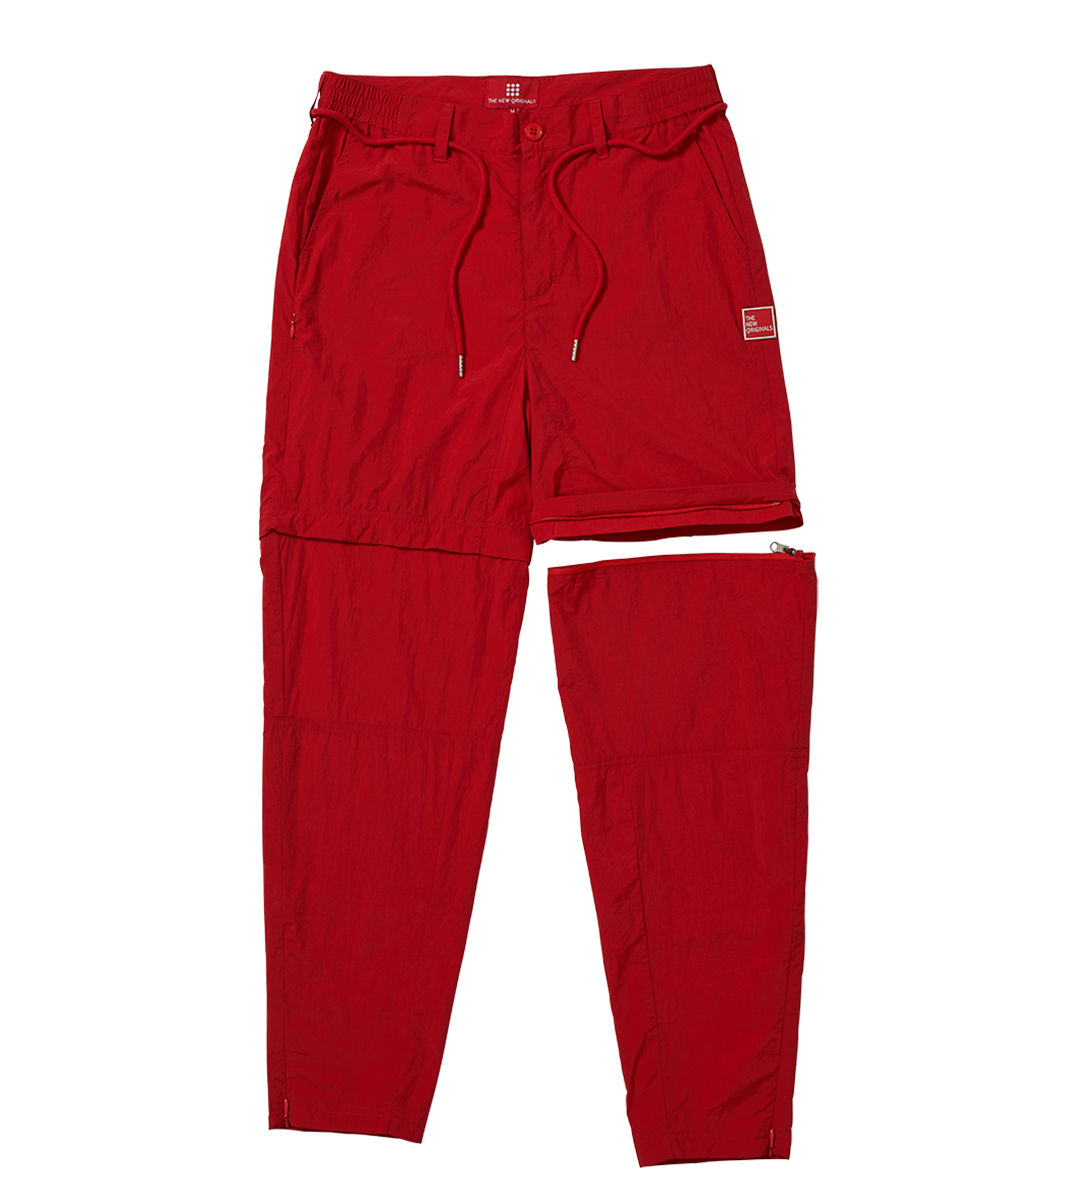 The New Originals Red Parachute Nylon Trousers